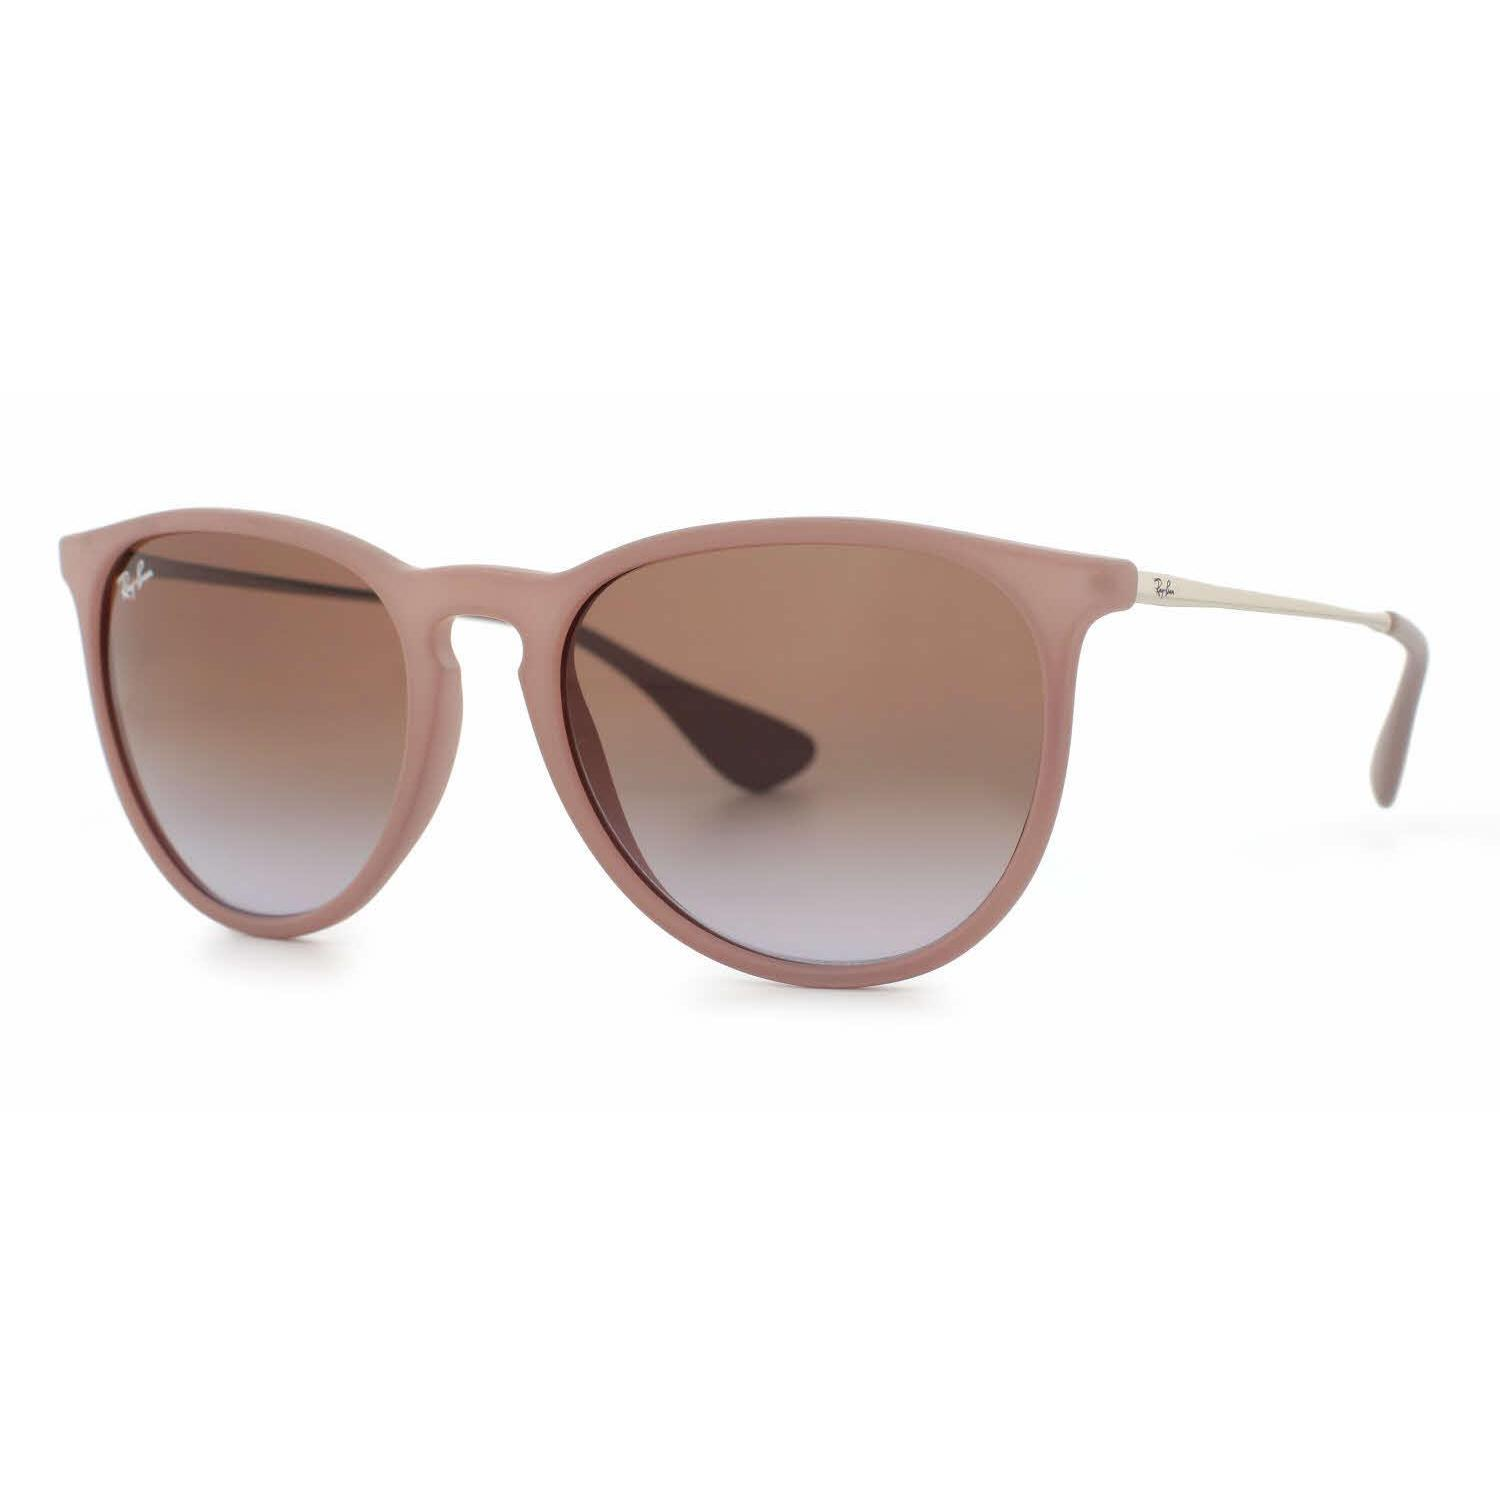 022690d778 Ray-Ban Women's Sunglasses | Find Great Sunglasses Deals Shopping at  Overstock